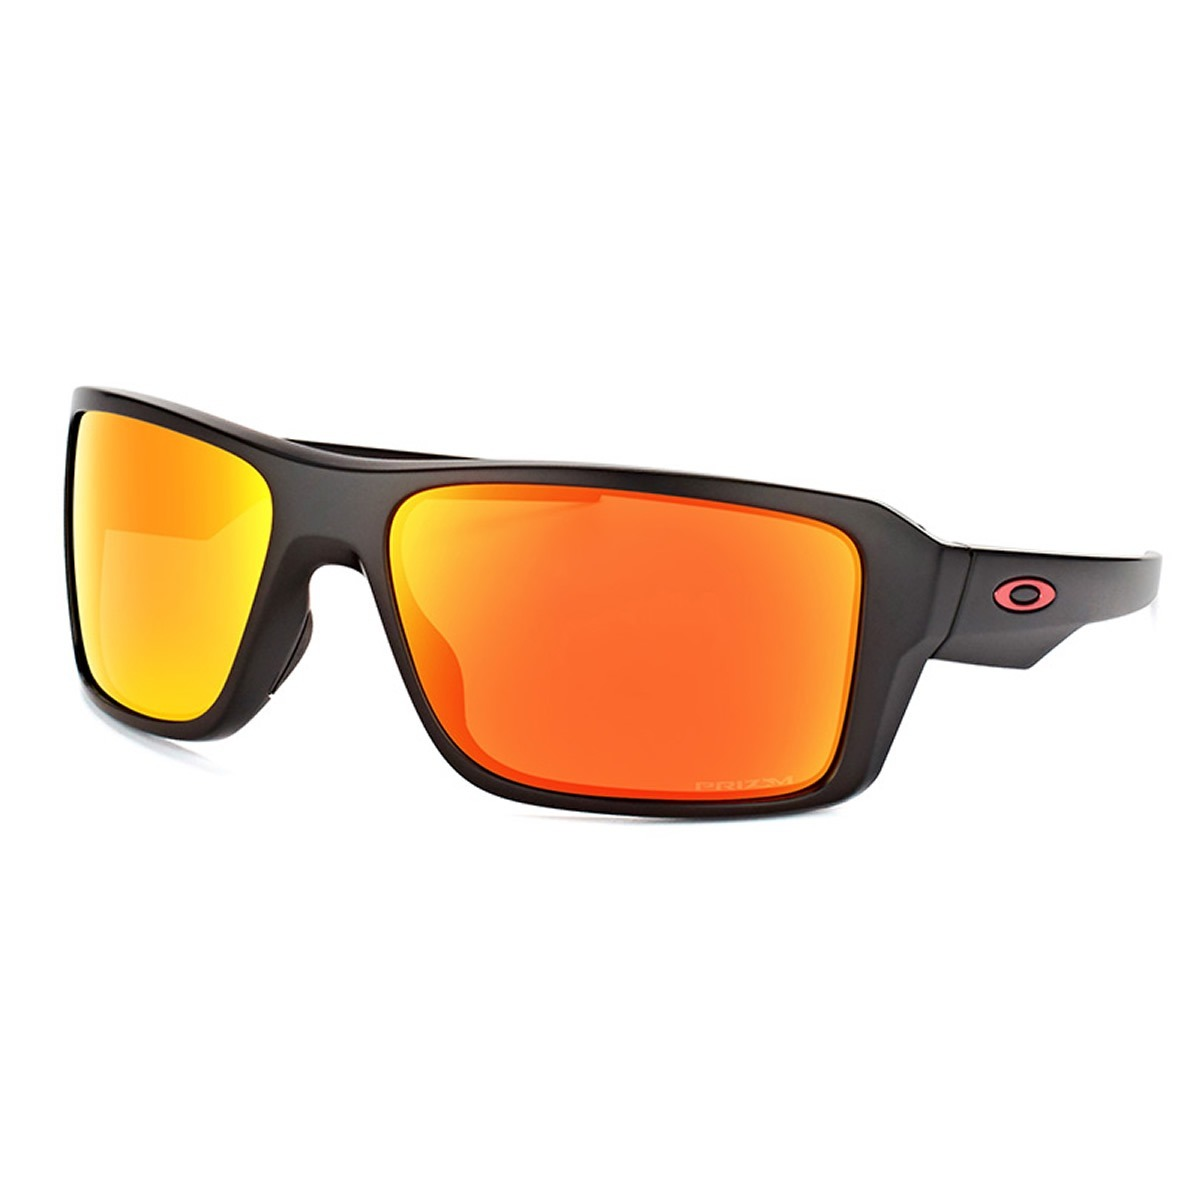 79d9d0d3db2db Lentes Oakley Double Edge Matte Black - Prizm Ruby Polarized ...